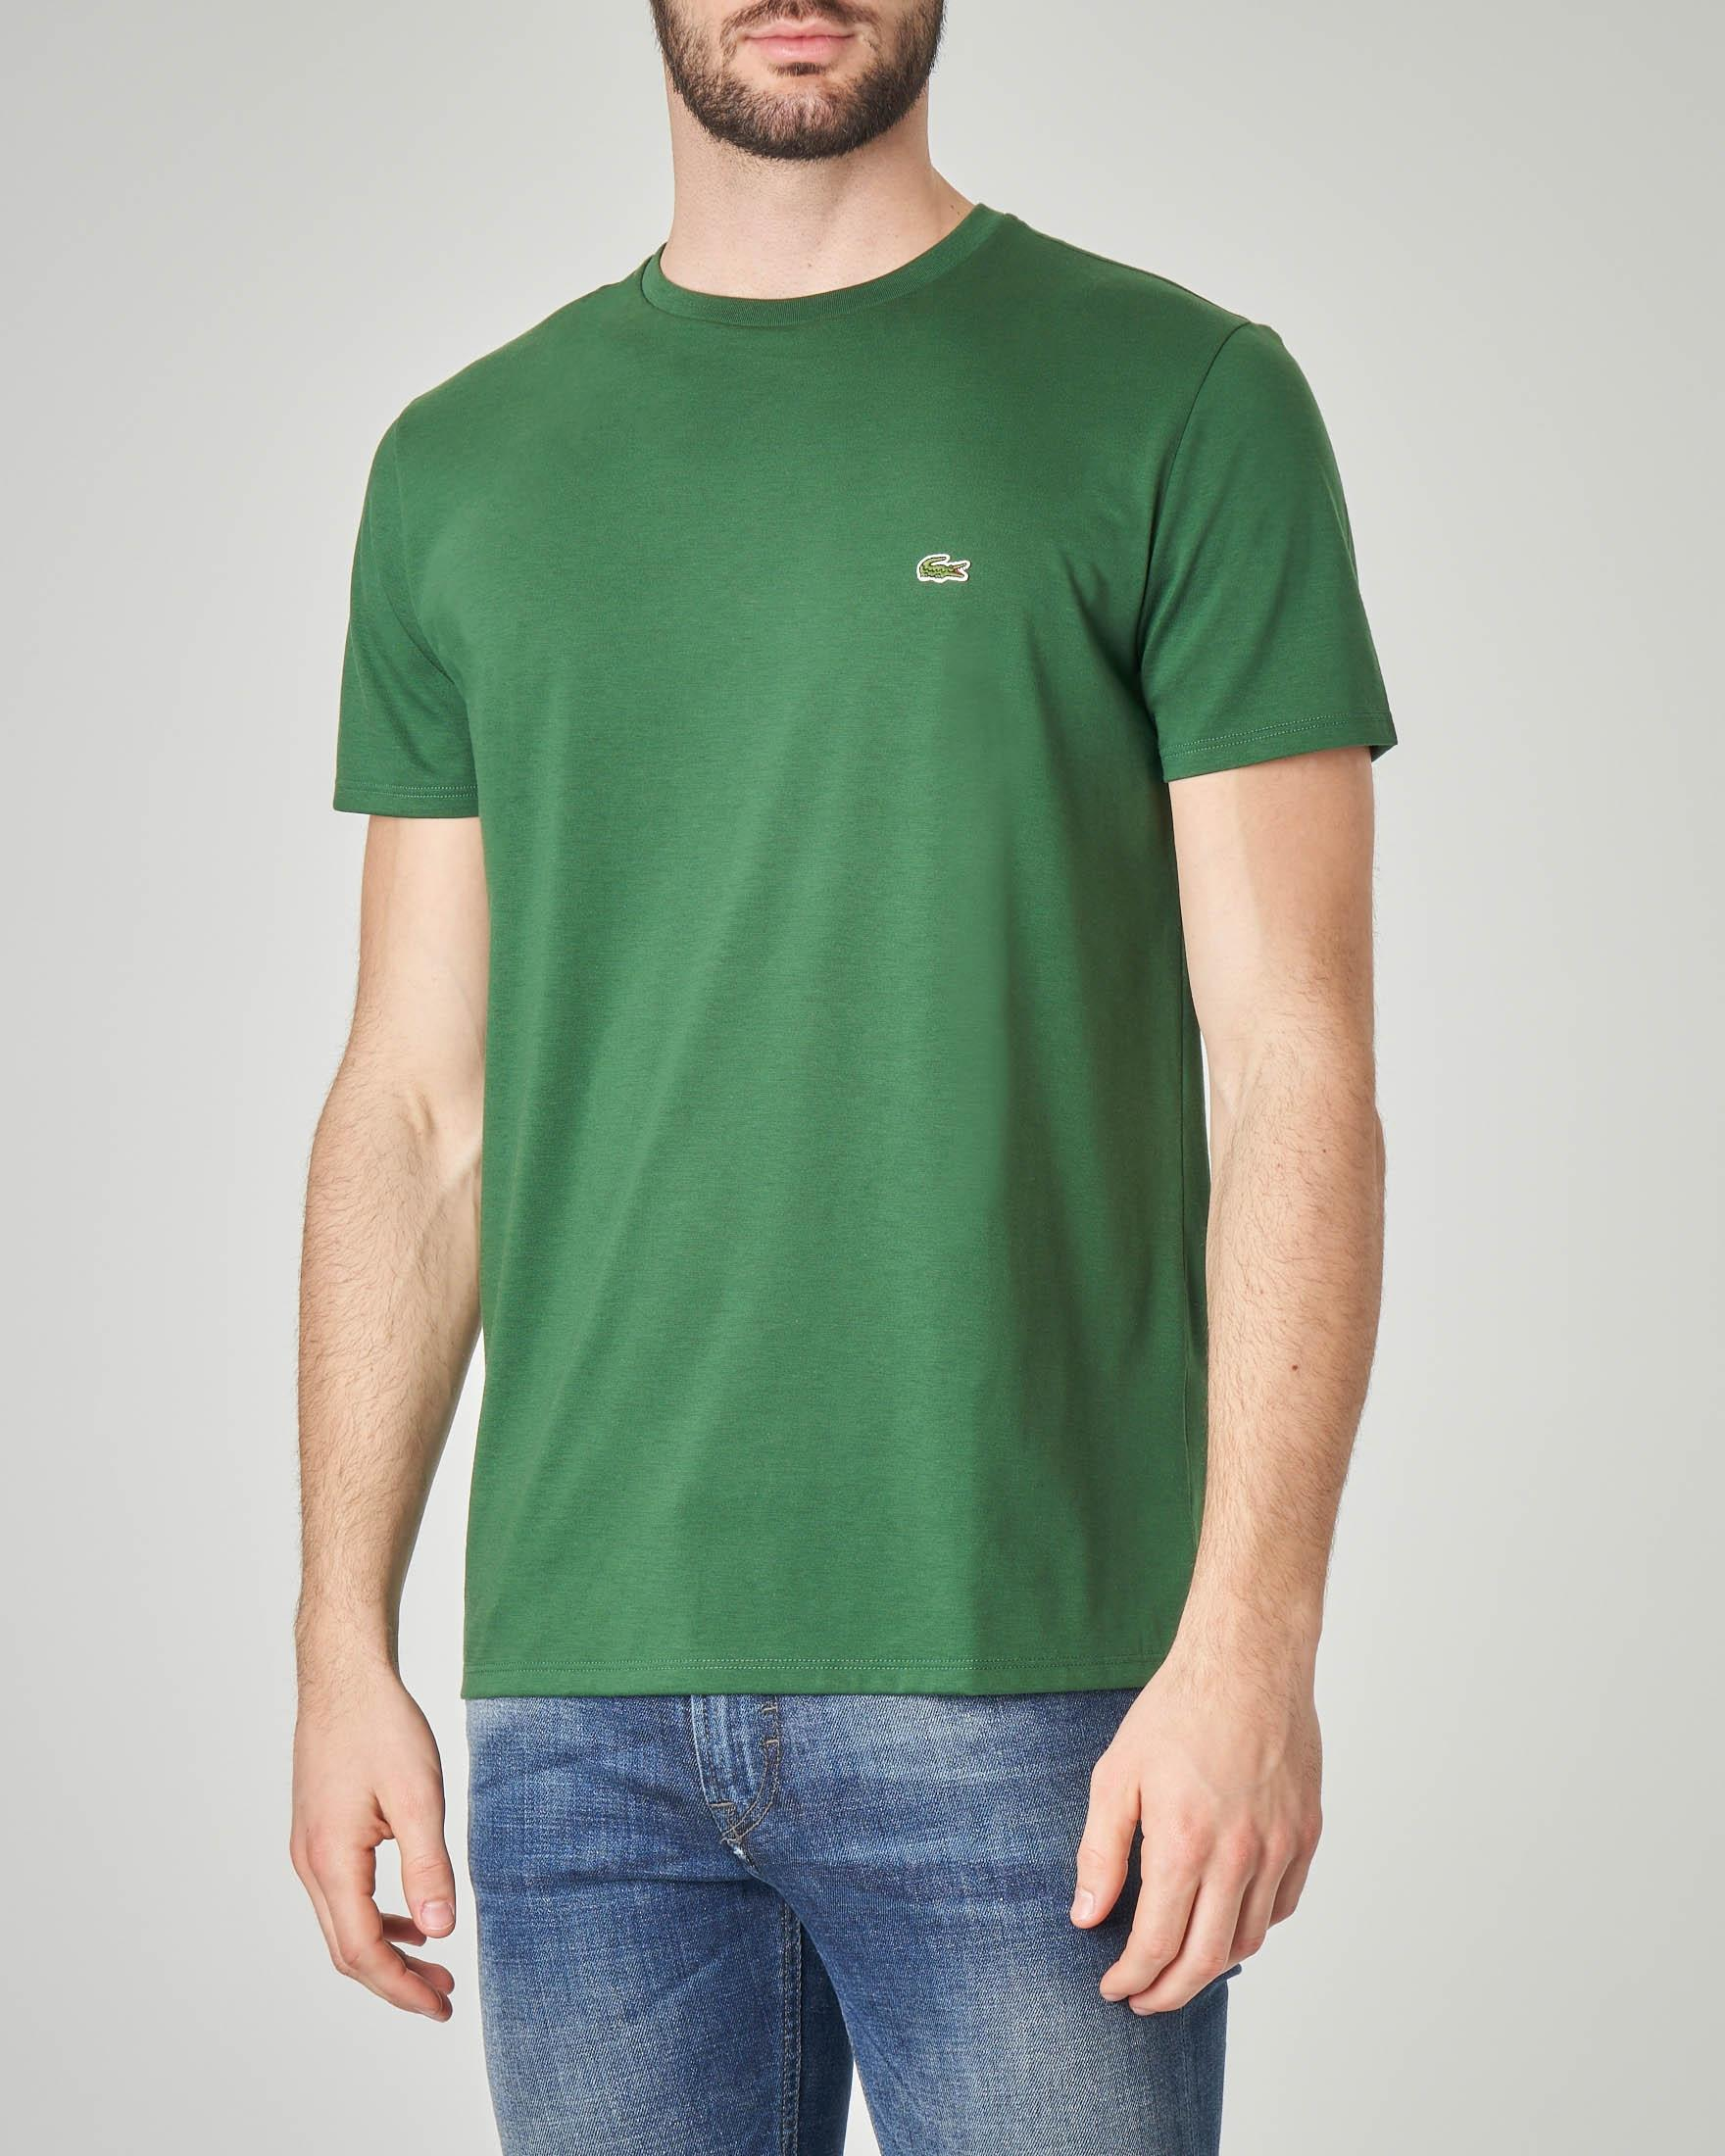 T-shirt verde in pima cotton con logo coccodrillo verde